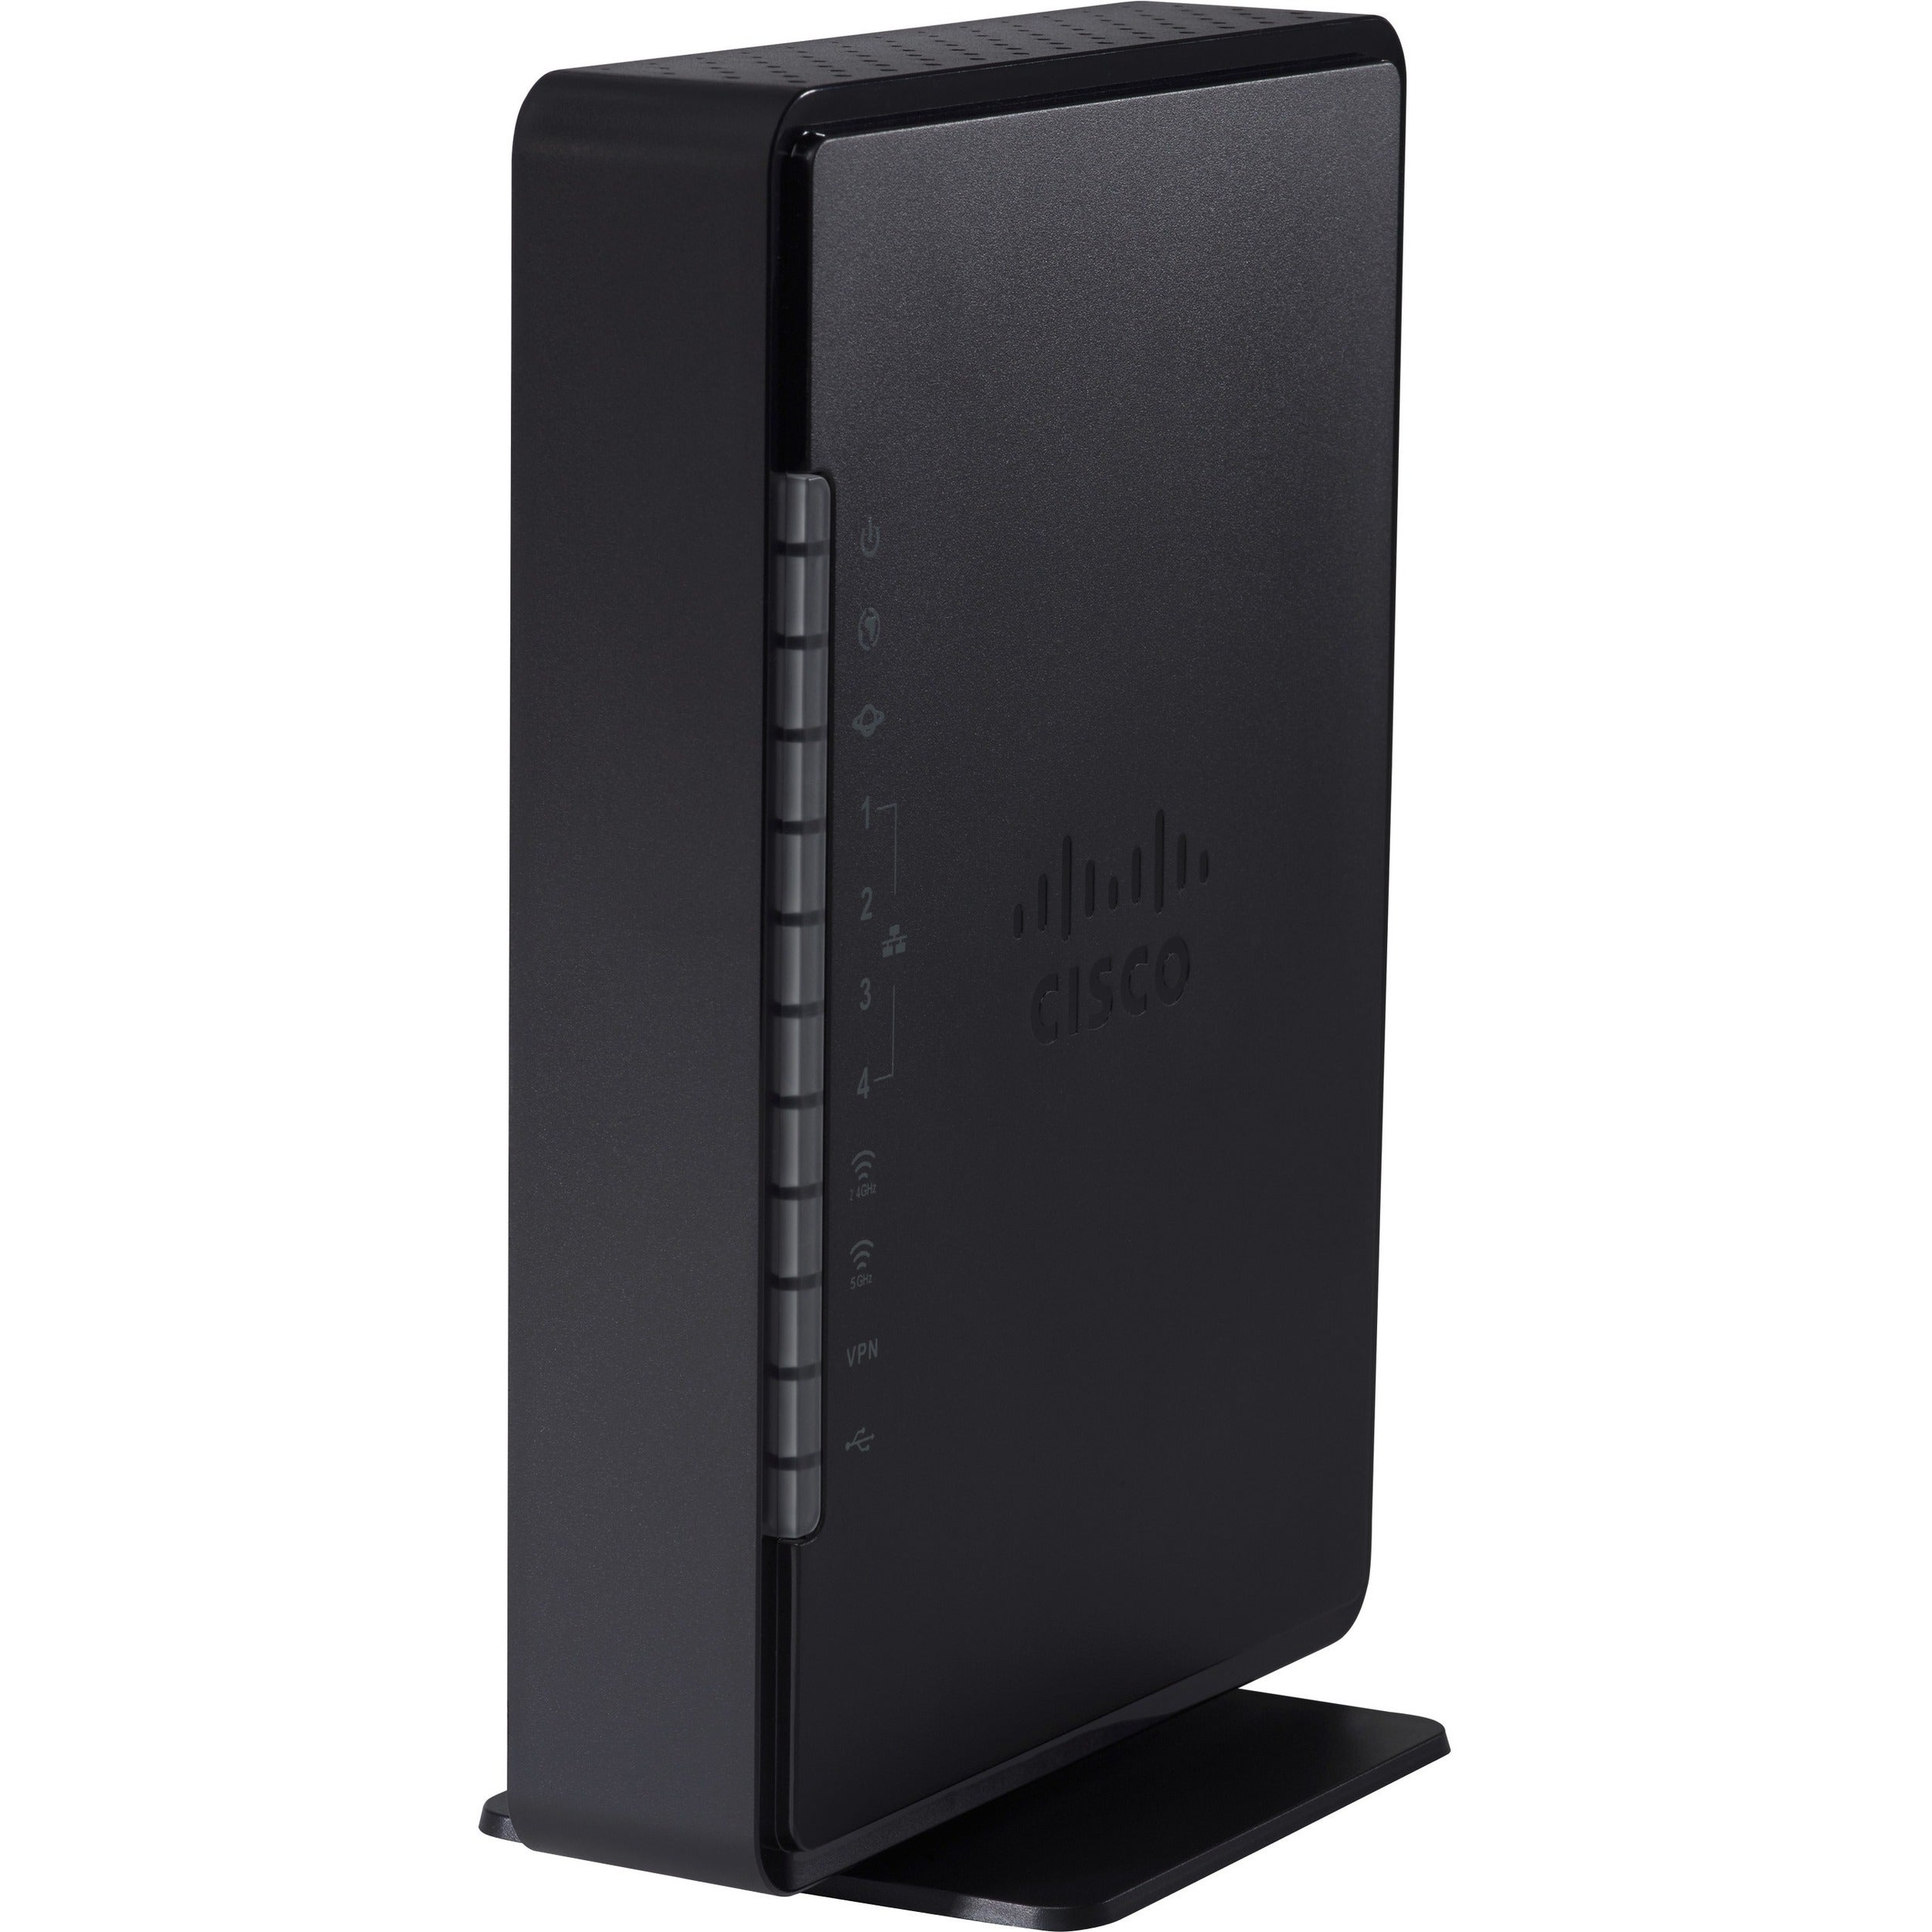 Cisco RV134W Ieee 802.11ac VDSL2, Ethernet Modem/Wireless...